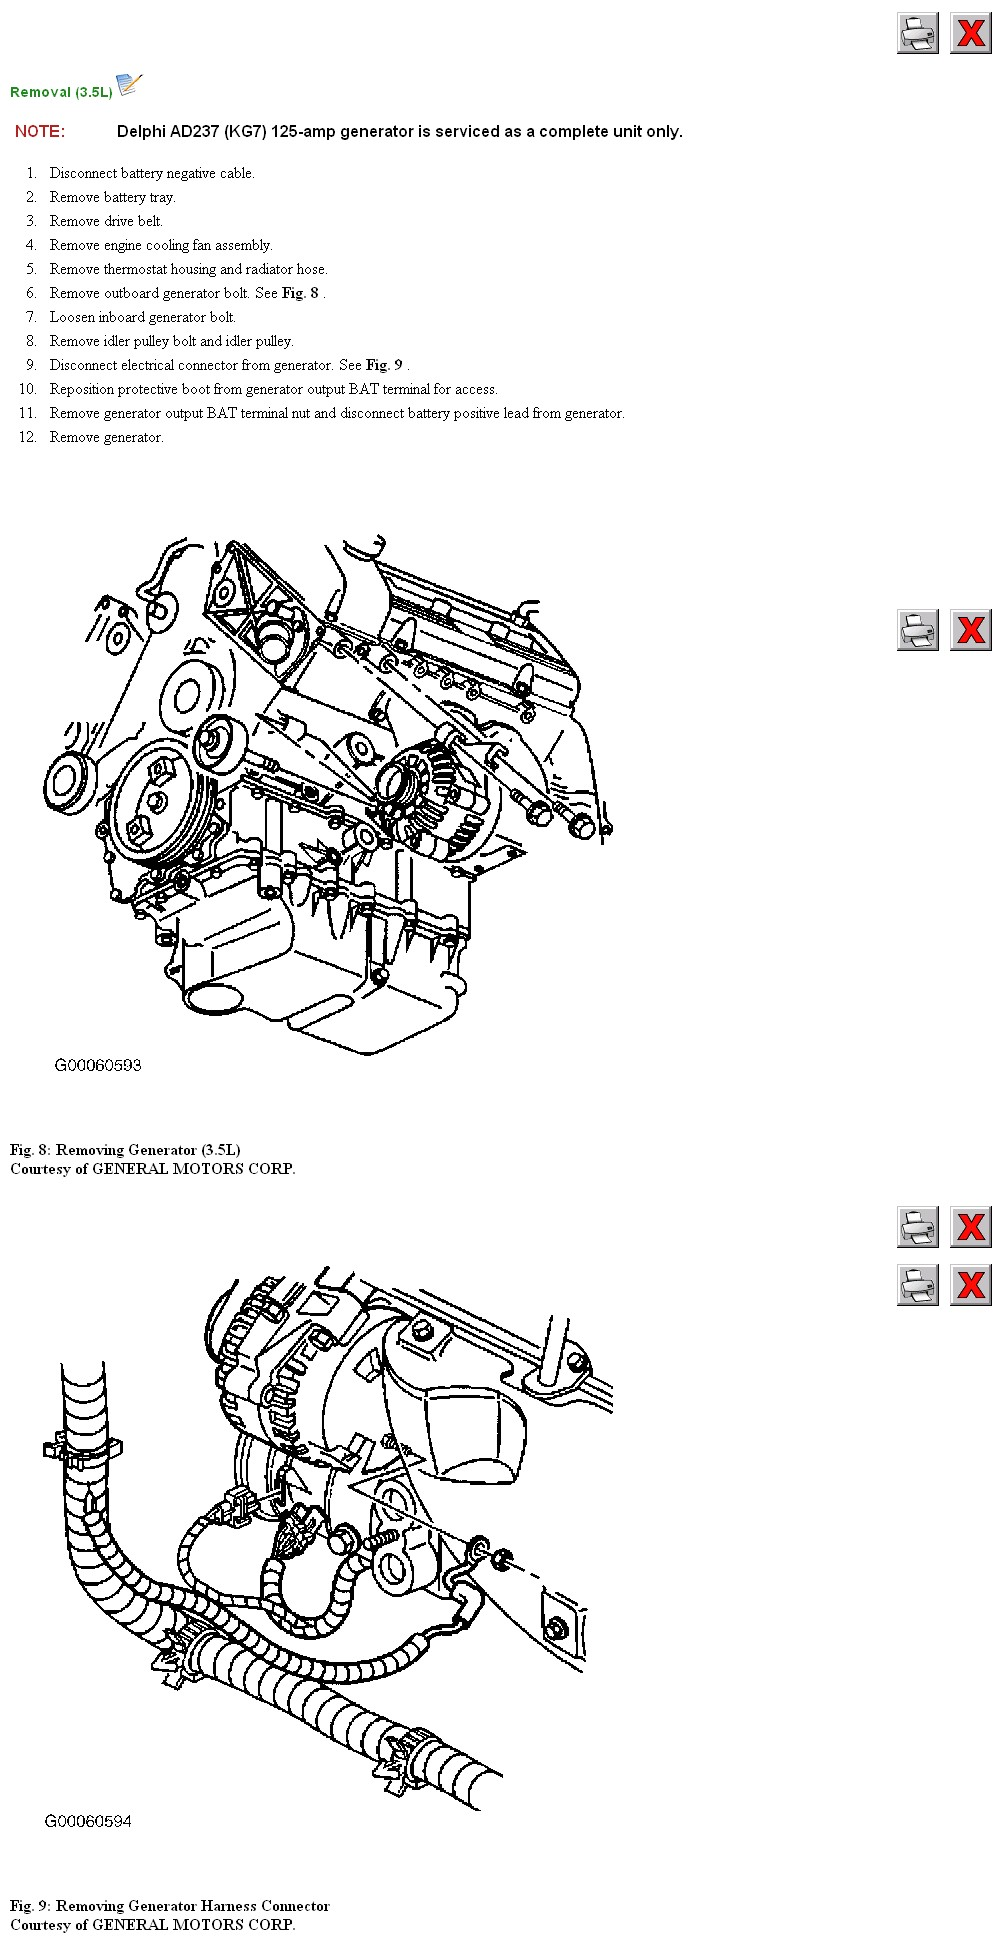 removing an alternator from a 2001 olds alero gls 3 5l rh justanswer com 2002 Oldsmobile Silhouette Engine Diagram Car Engine Diagram